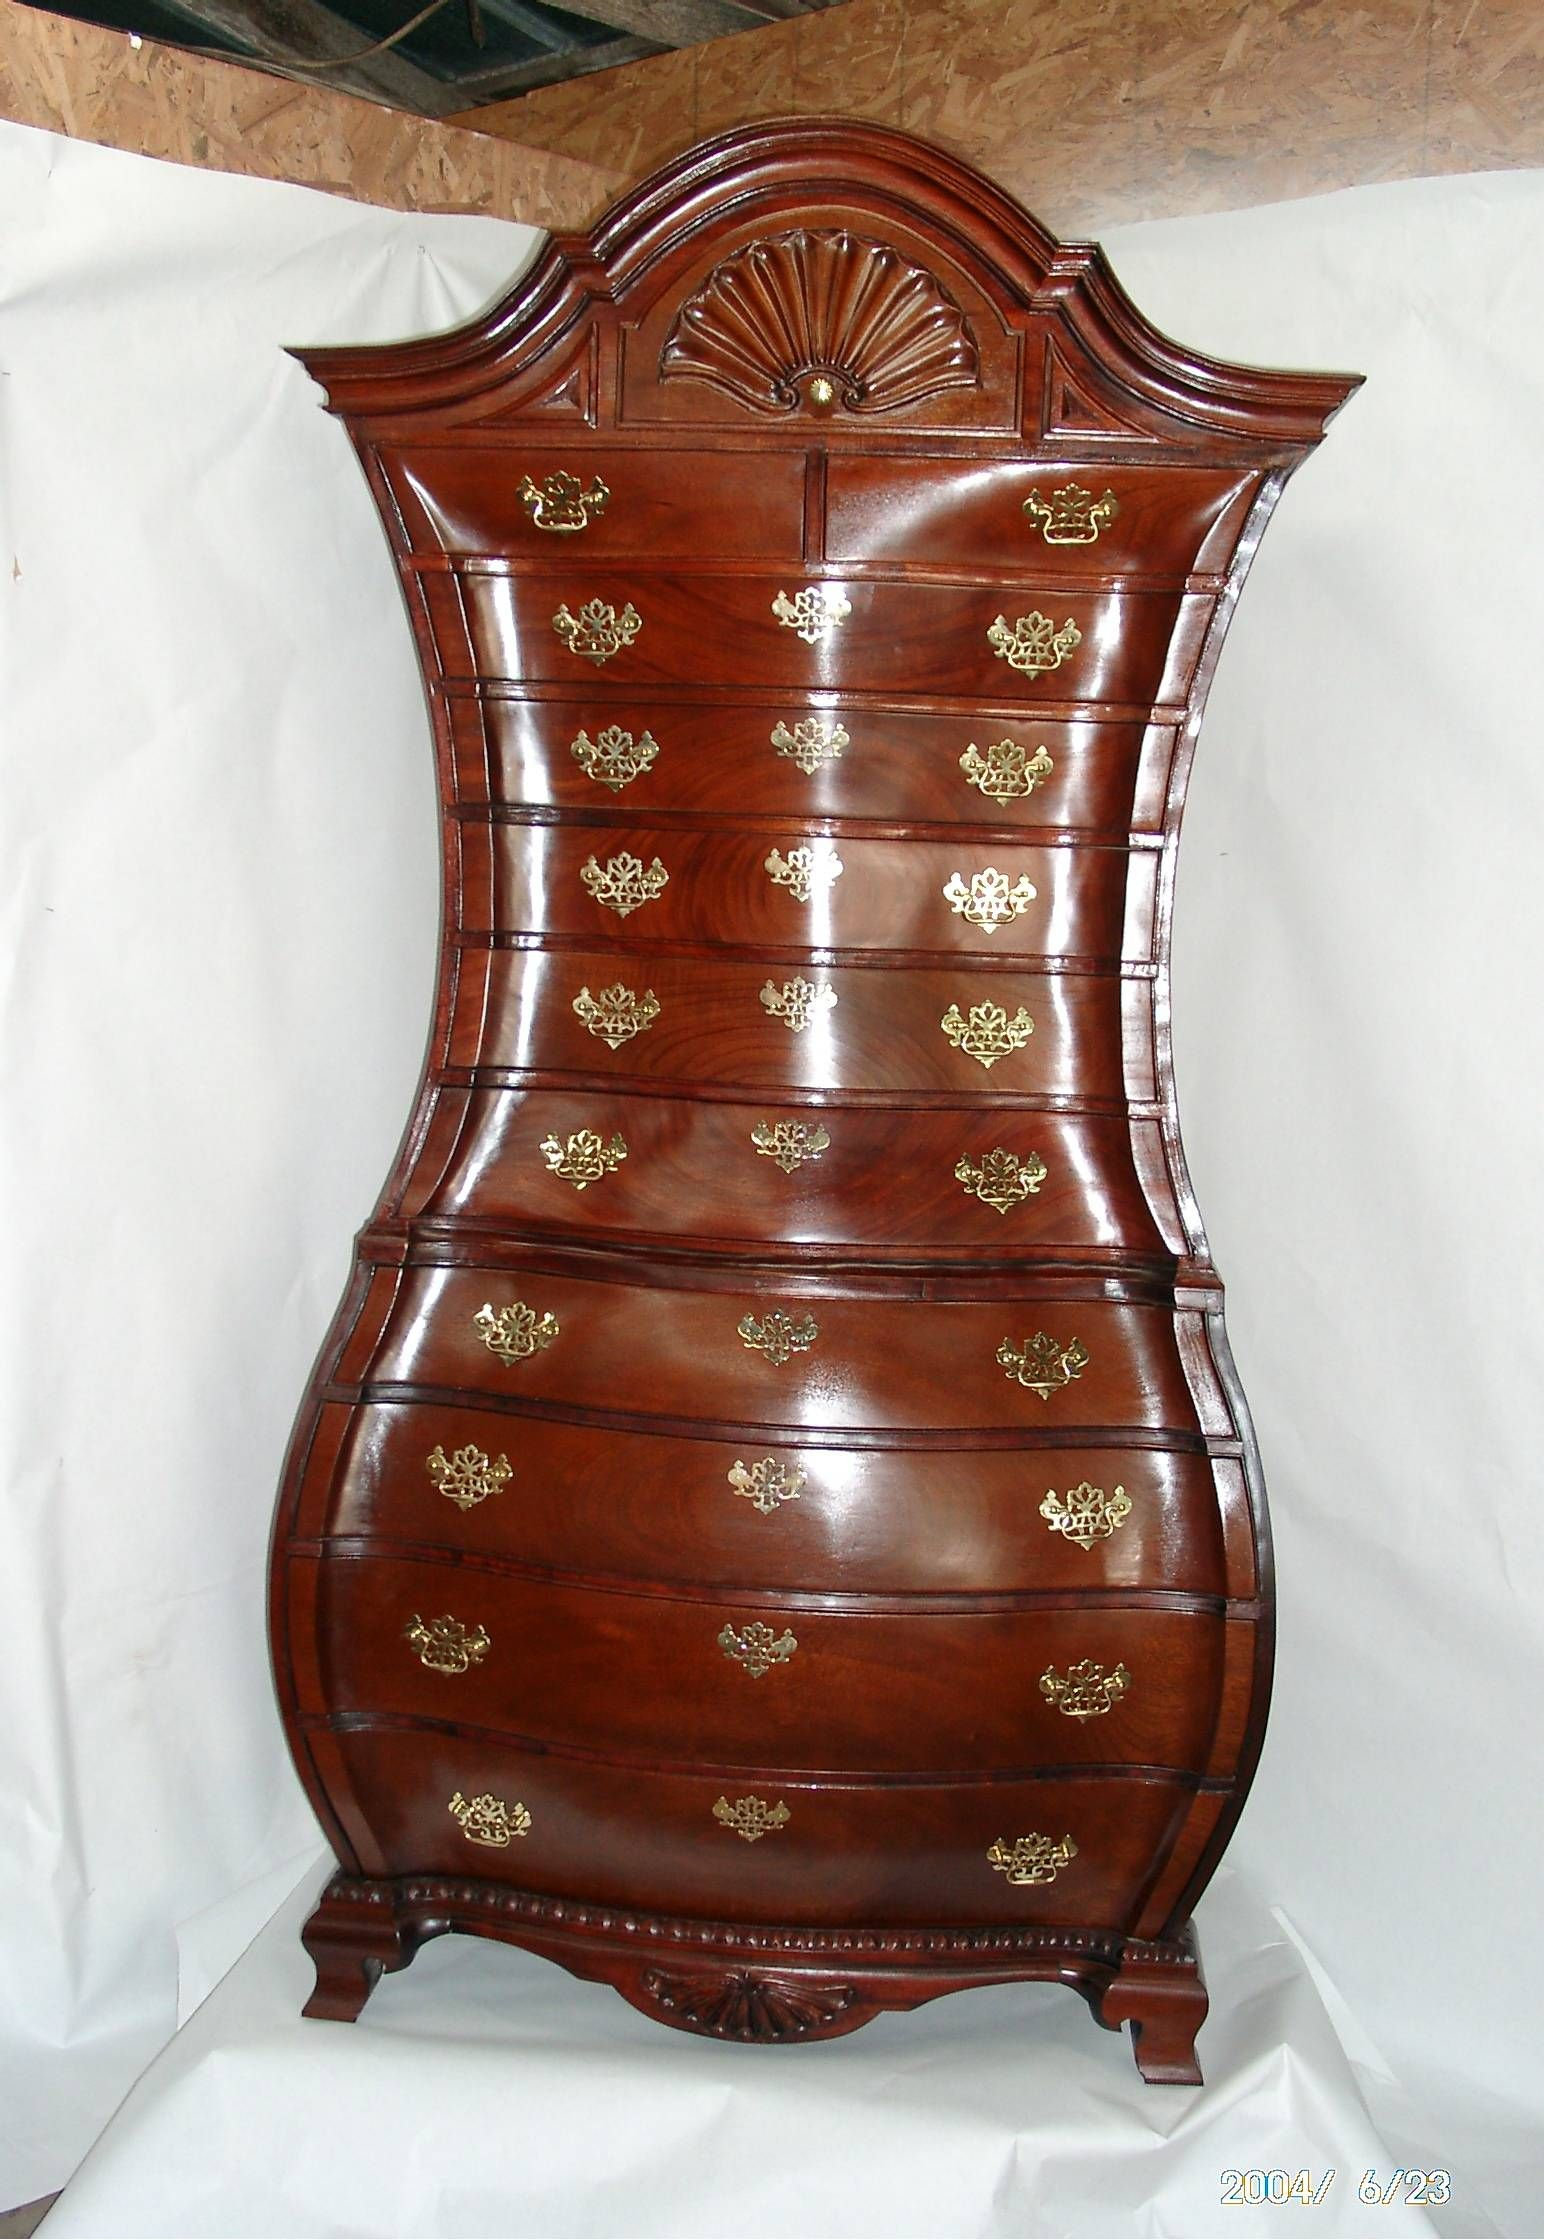 Queen Anne Bedroom Furniture This Bombe Chest Is Decorated With The Shell Motif Typical Of